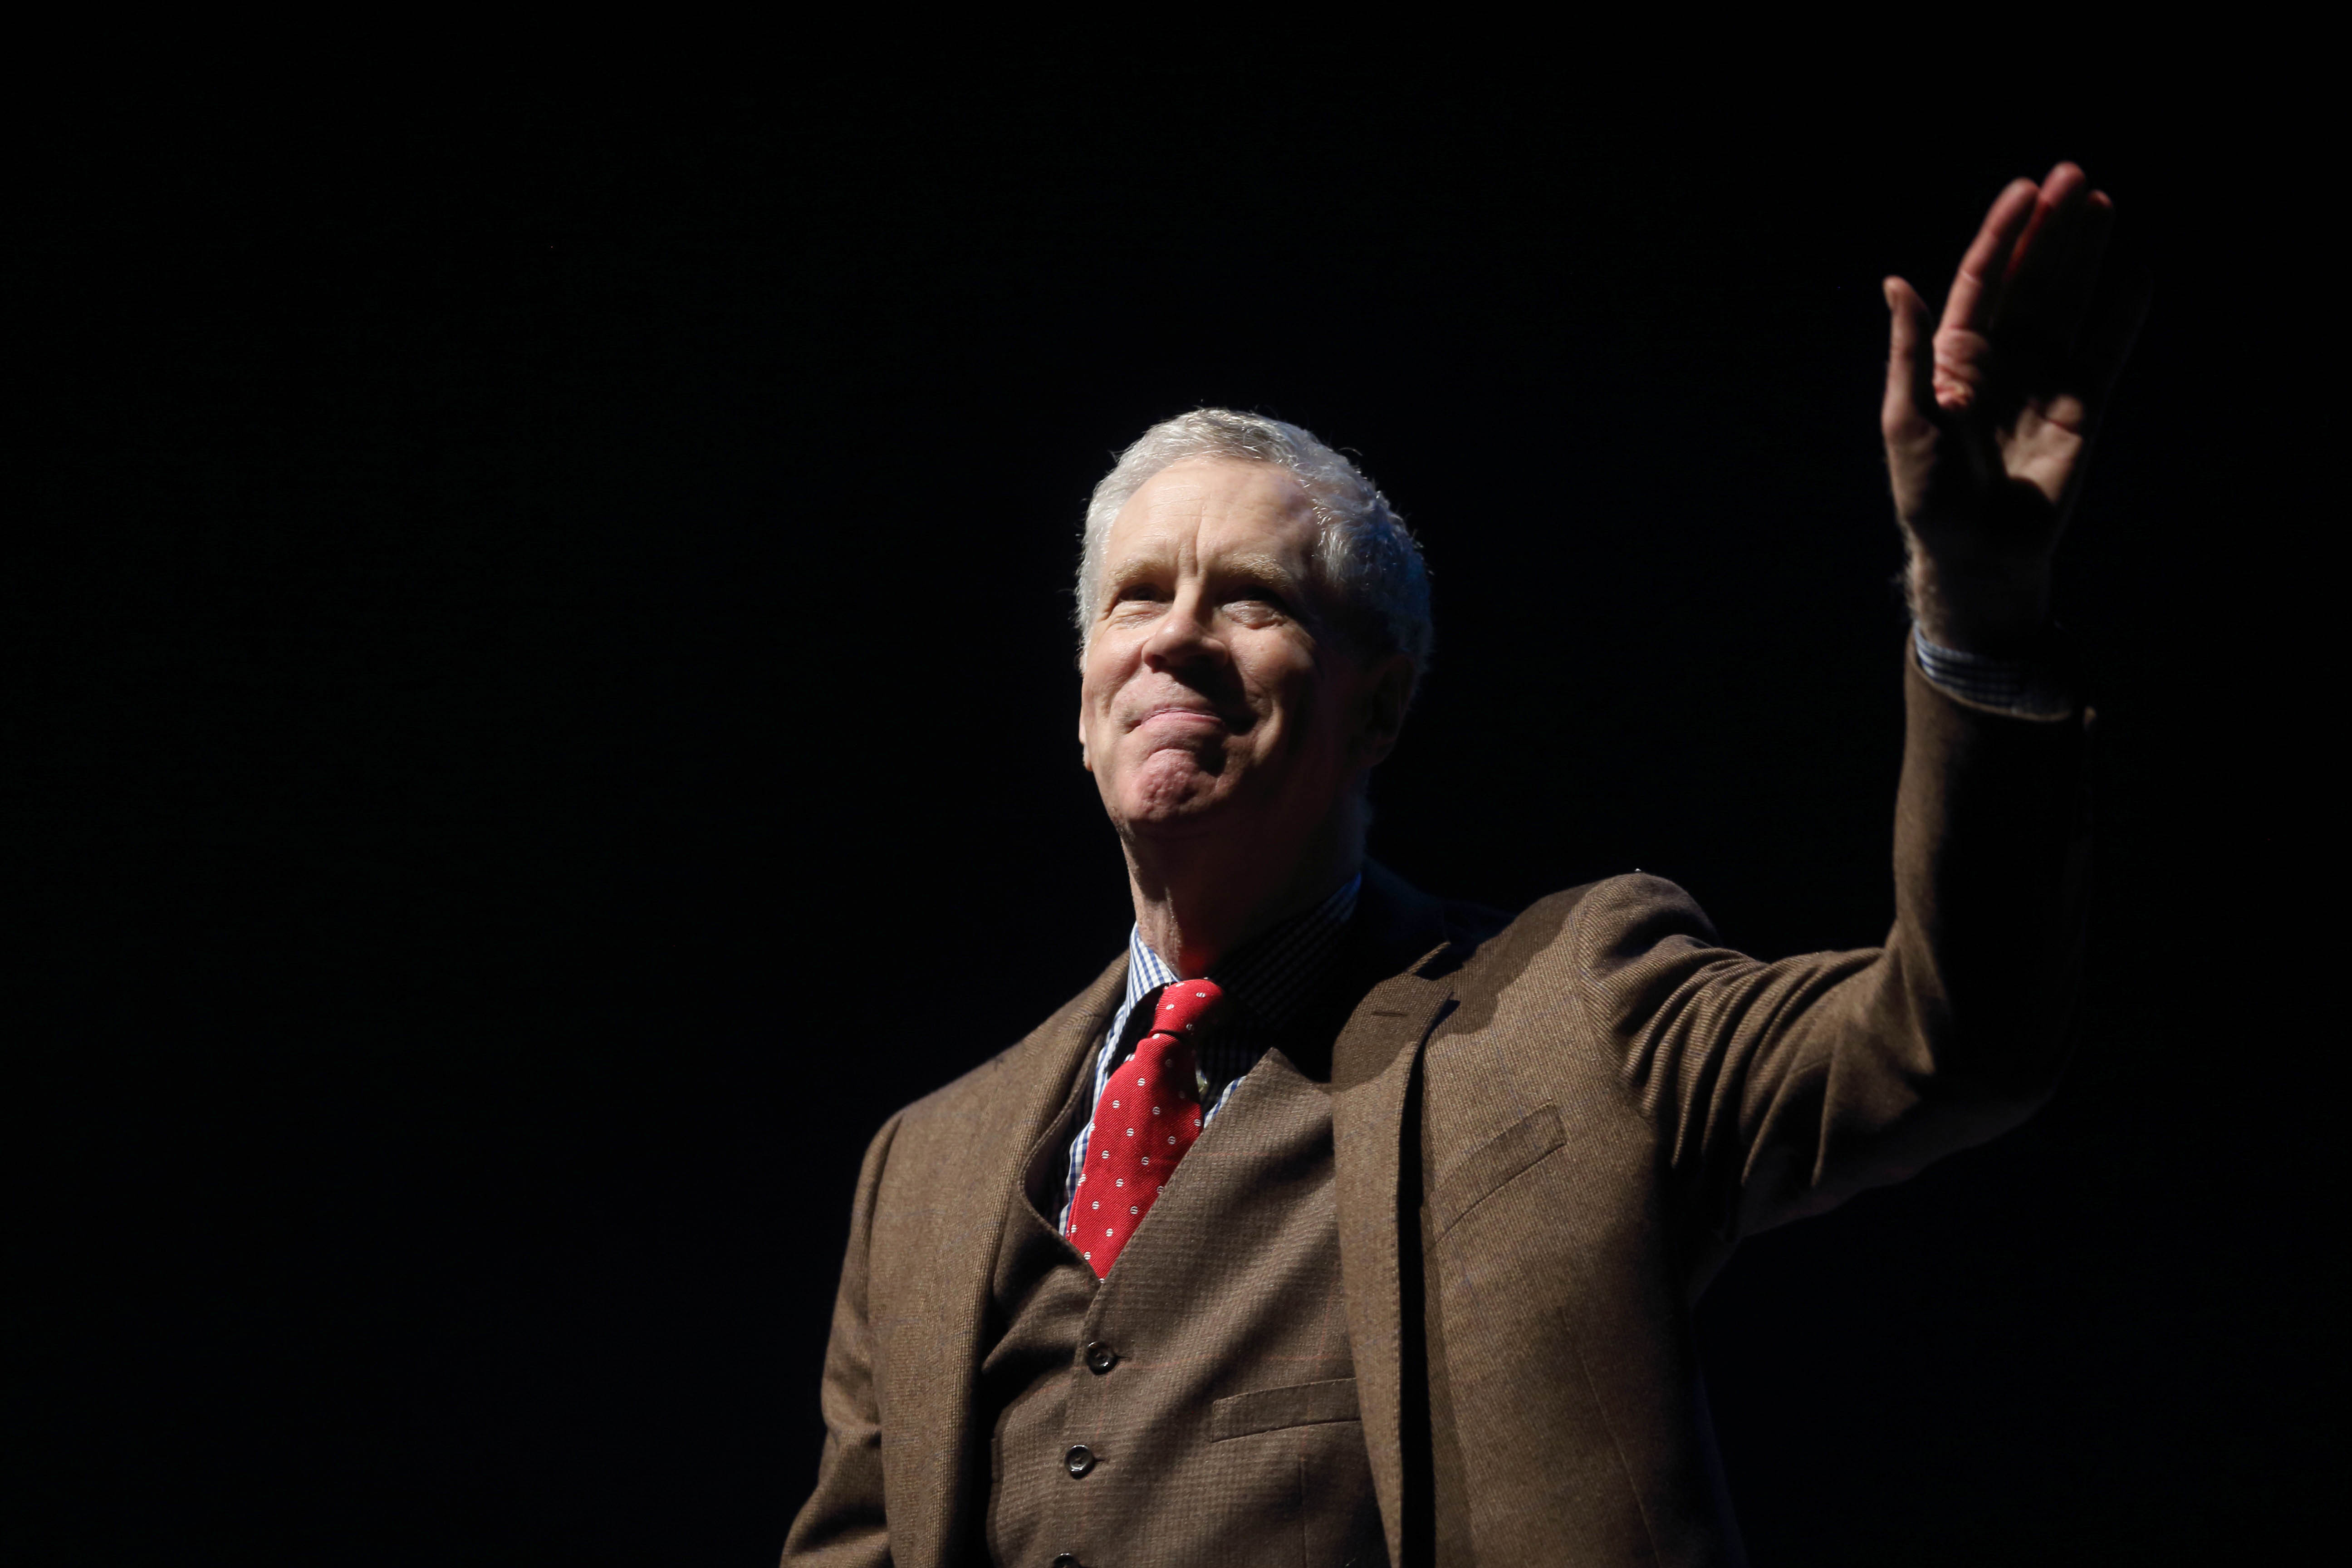 Caption: Stuart McLean, Credit: Mike Dembeck